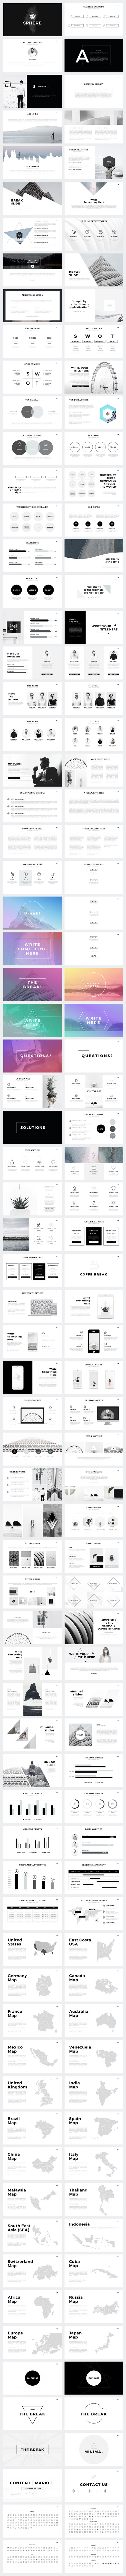 Show your works professional and clean with this trending Minimal Powerpoint Template. SPHERE is a clean, simple and contemporary design, with cool brush photo layouts and creative slides to show your portfolio and your company profile.